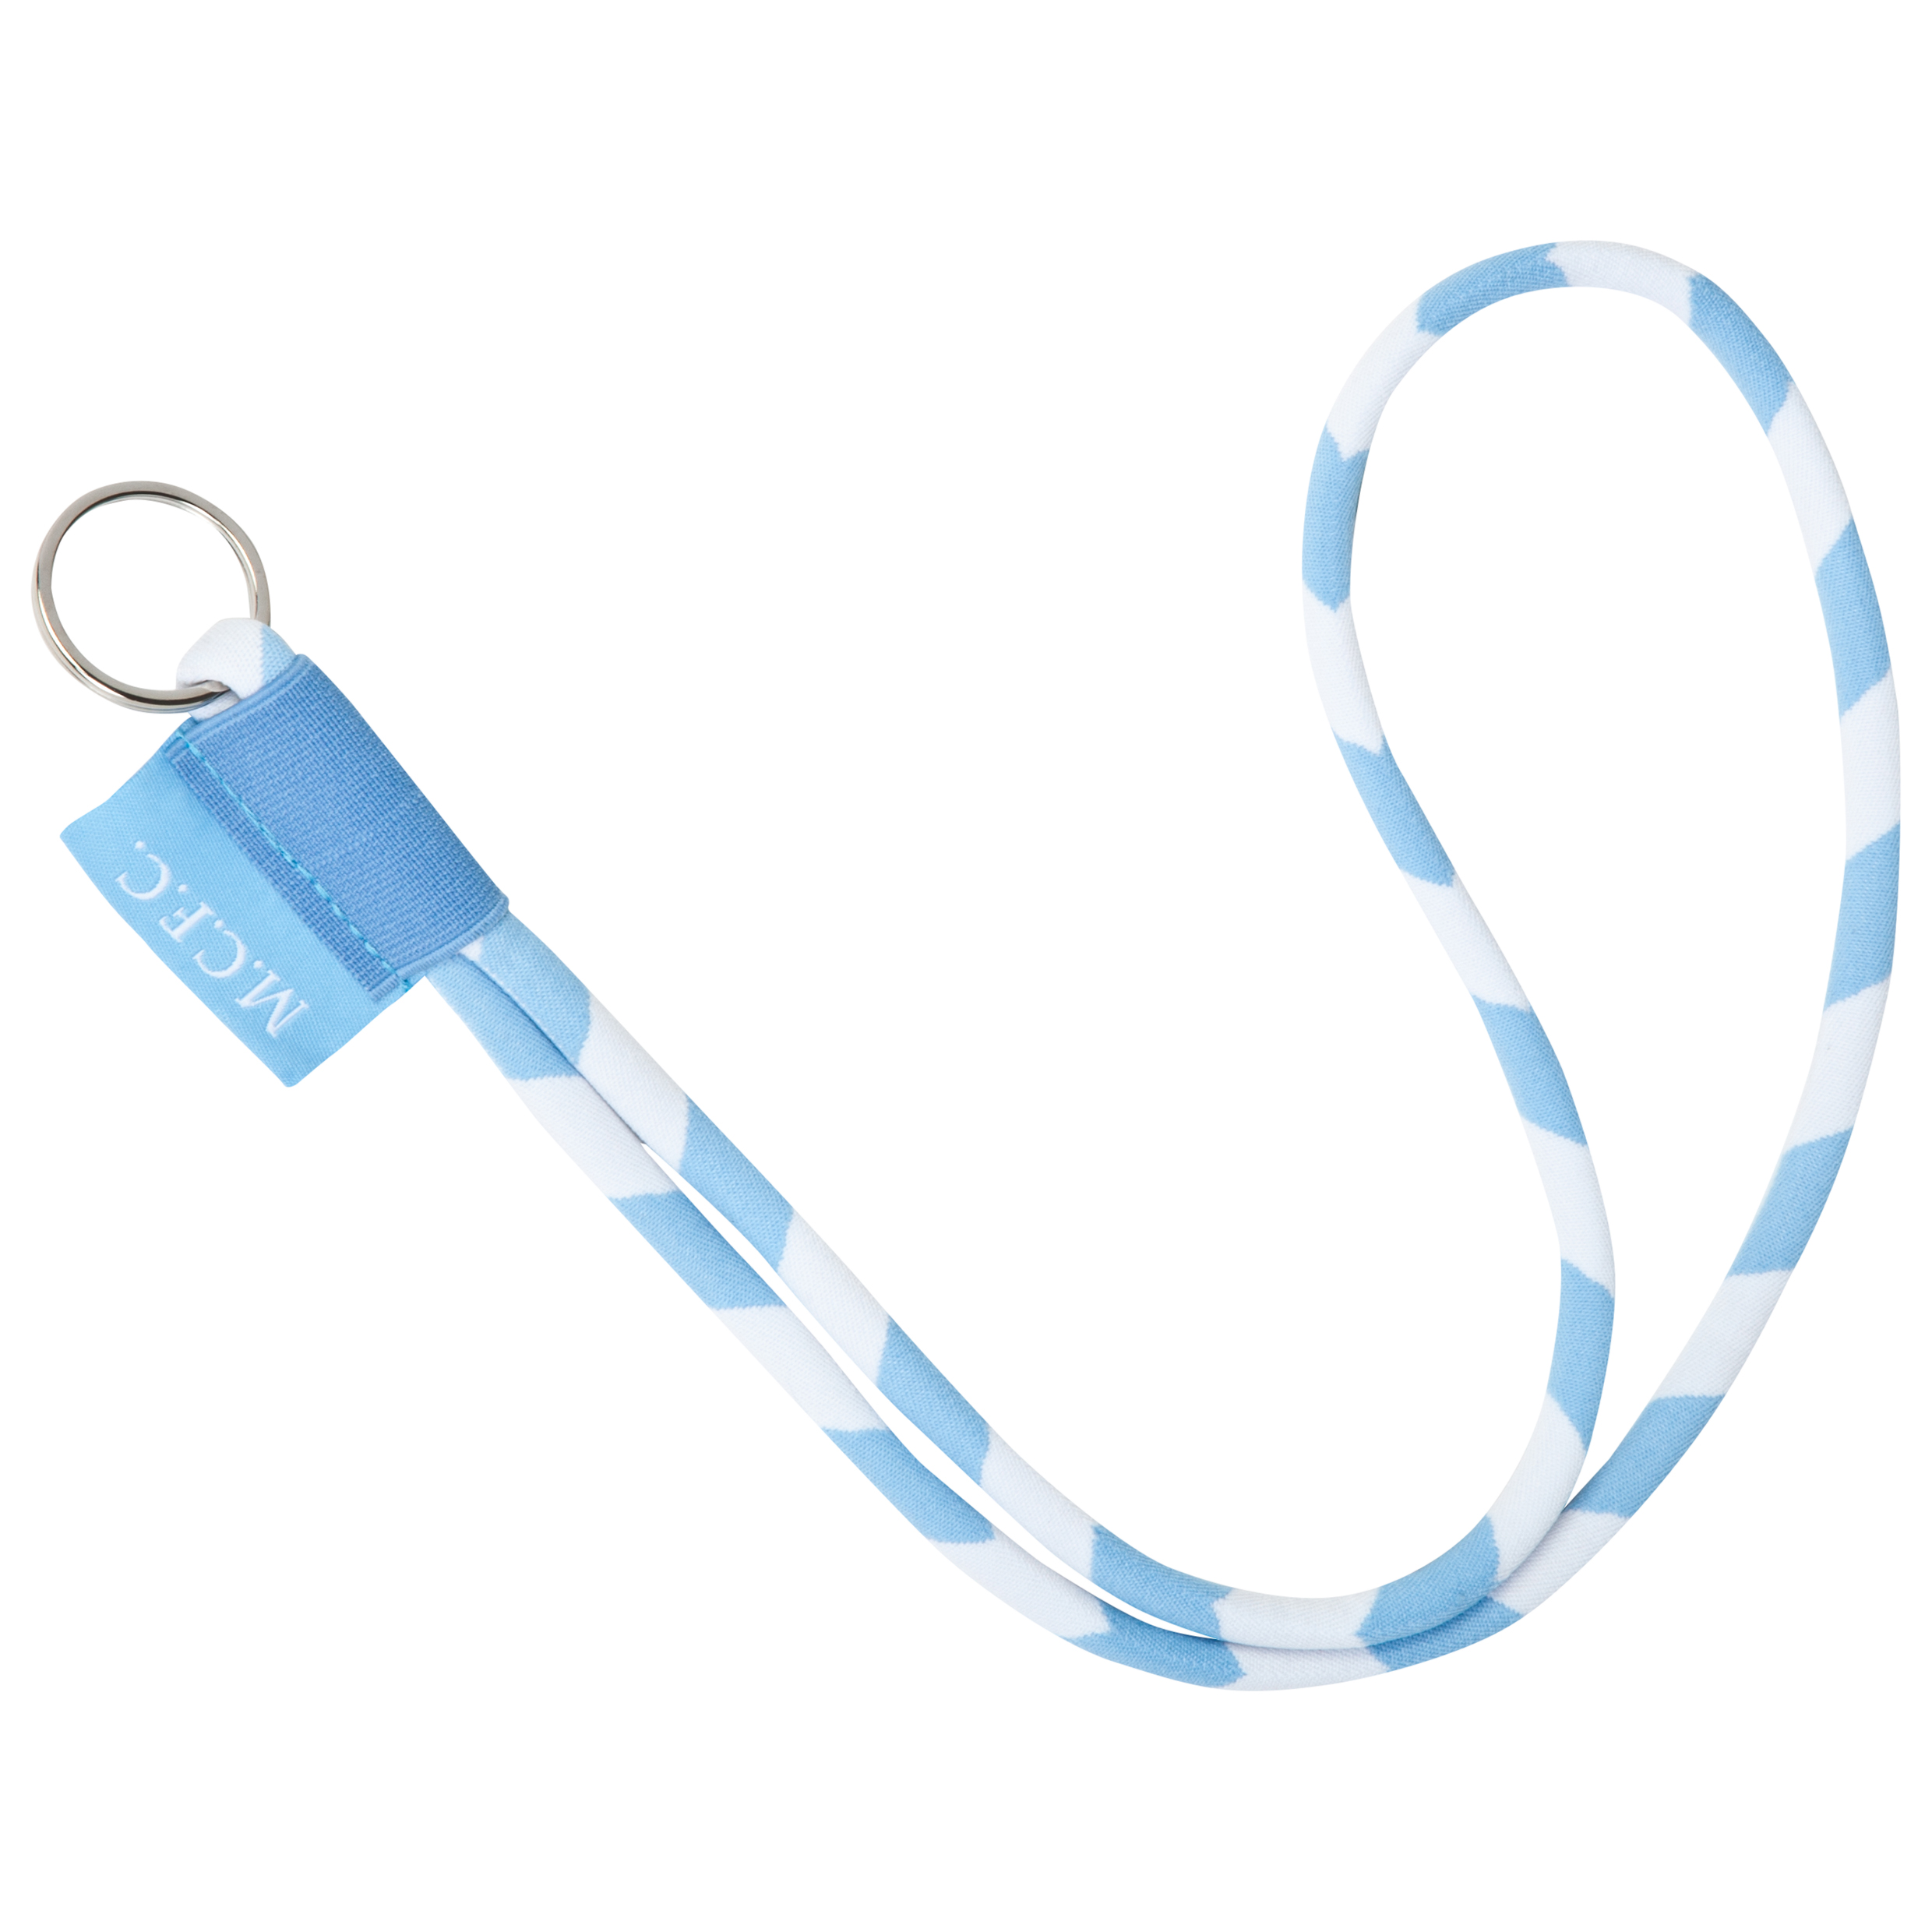 Manchester City Twist Lanyard